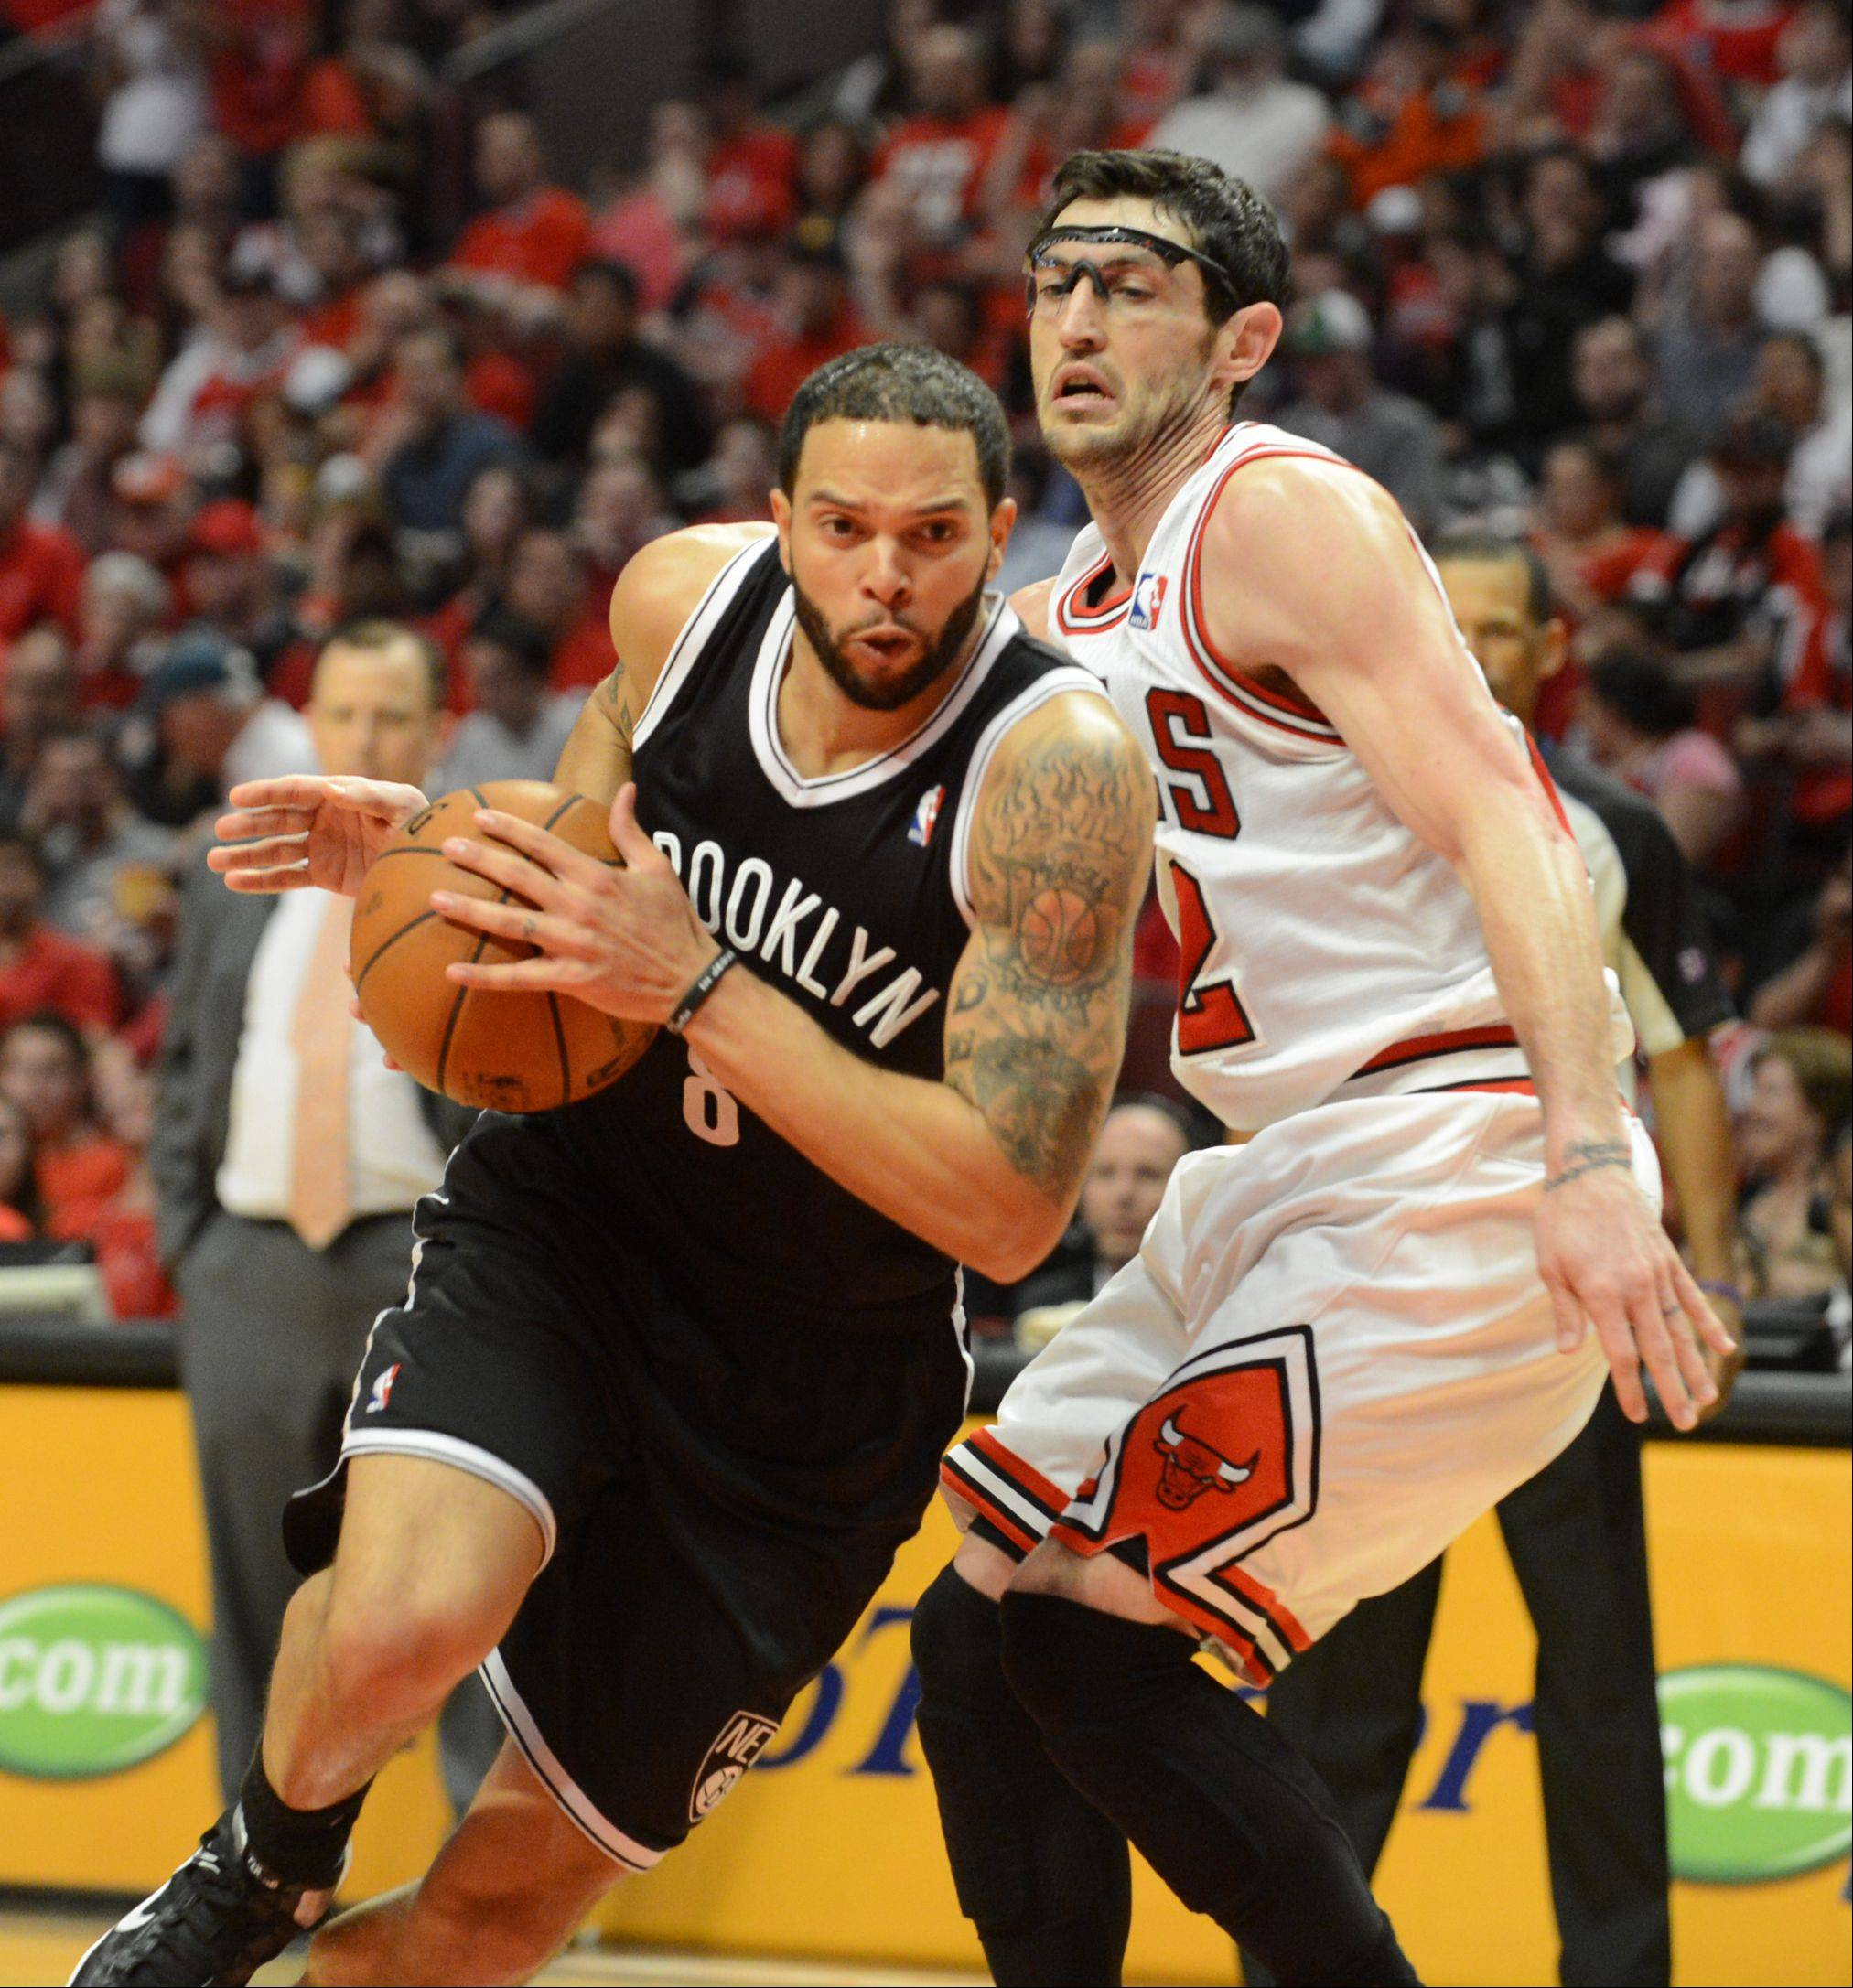 Brooklyn's Deron Williams won't have to contend with veteran Kirk Hinrich in Game 5 of their first-round series tonight in New York. Hinrich has been ruled out due to a bruised left calf.